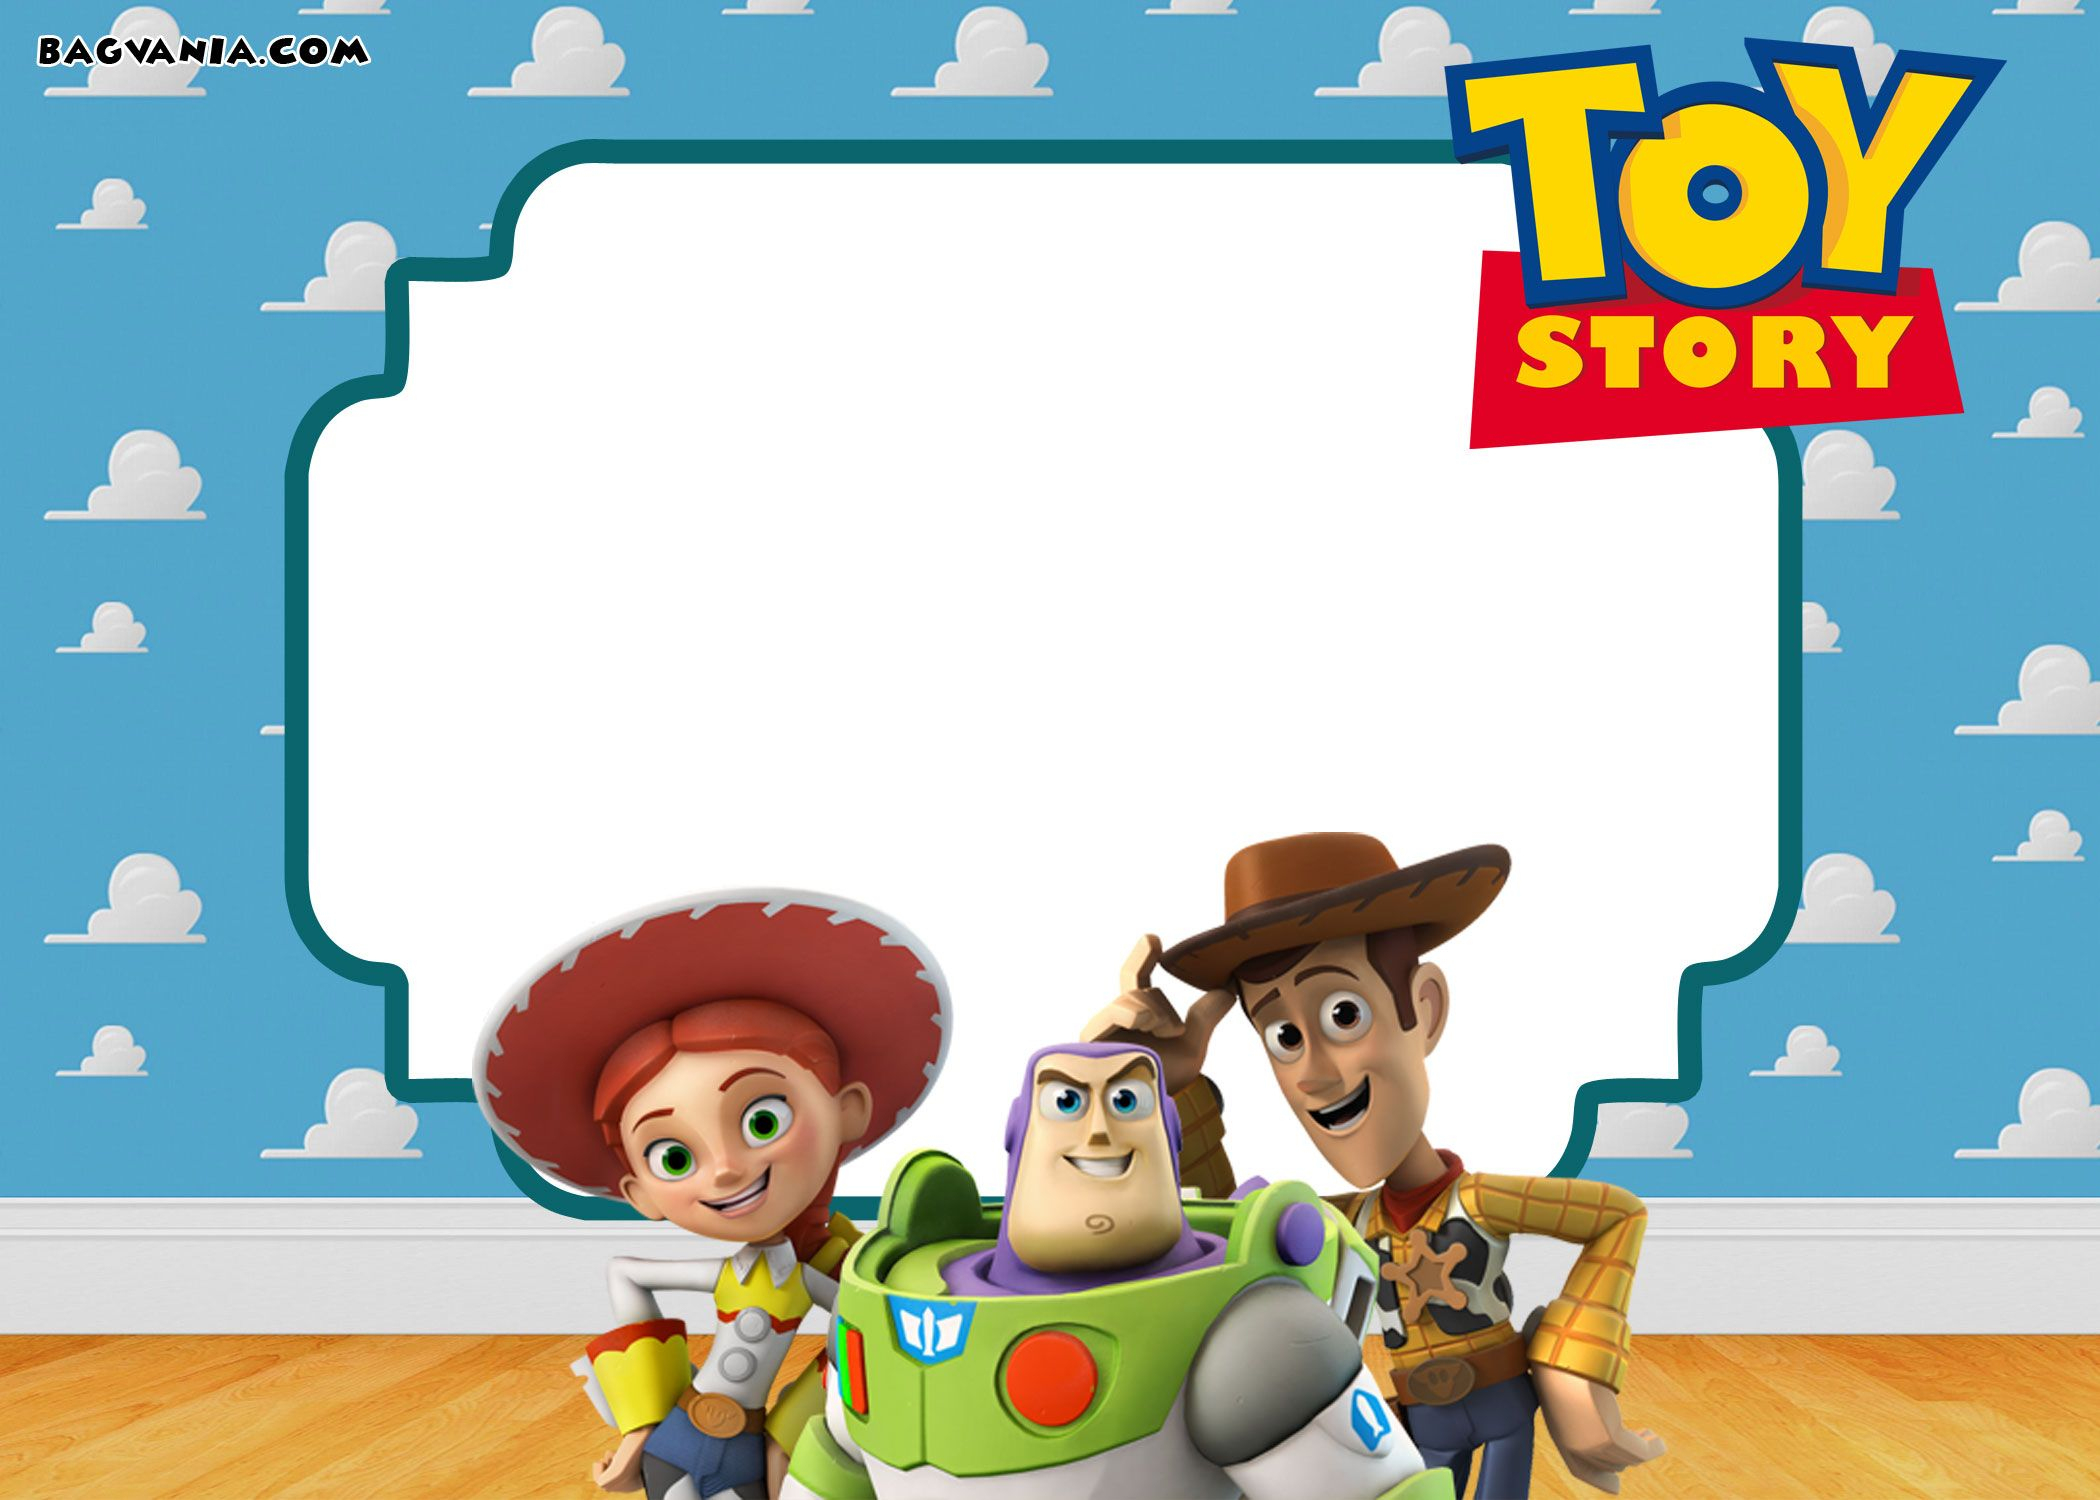 Free Printable Toy Story 3 Birthday Invitations | Free Printable - Toy Story Birthday Card Printable Free